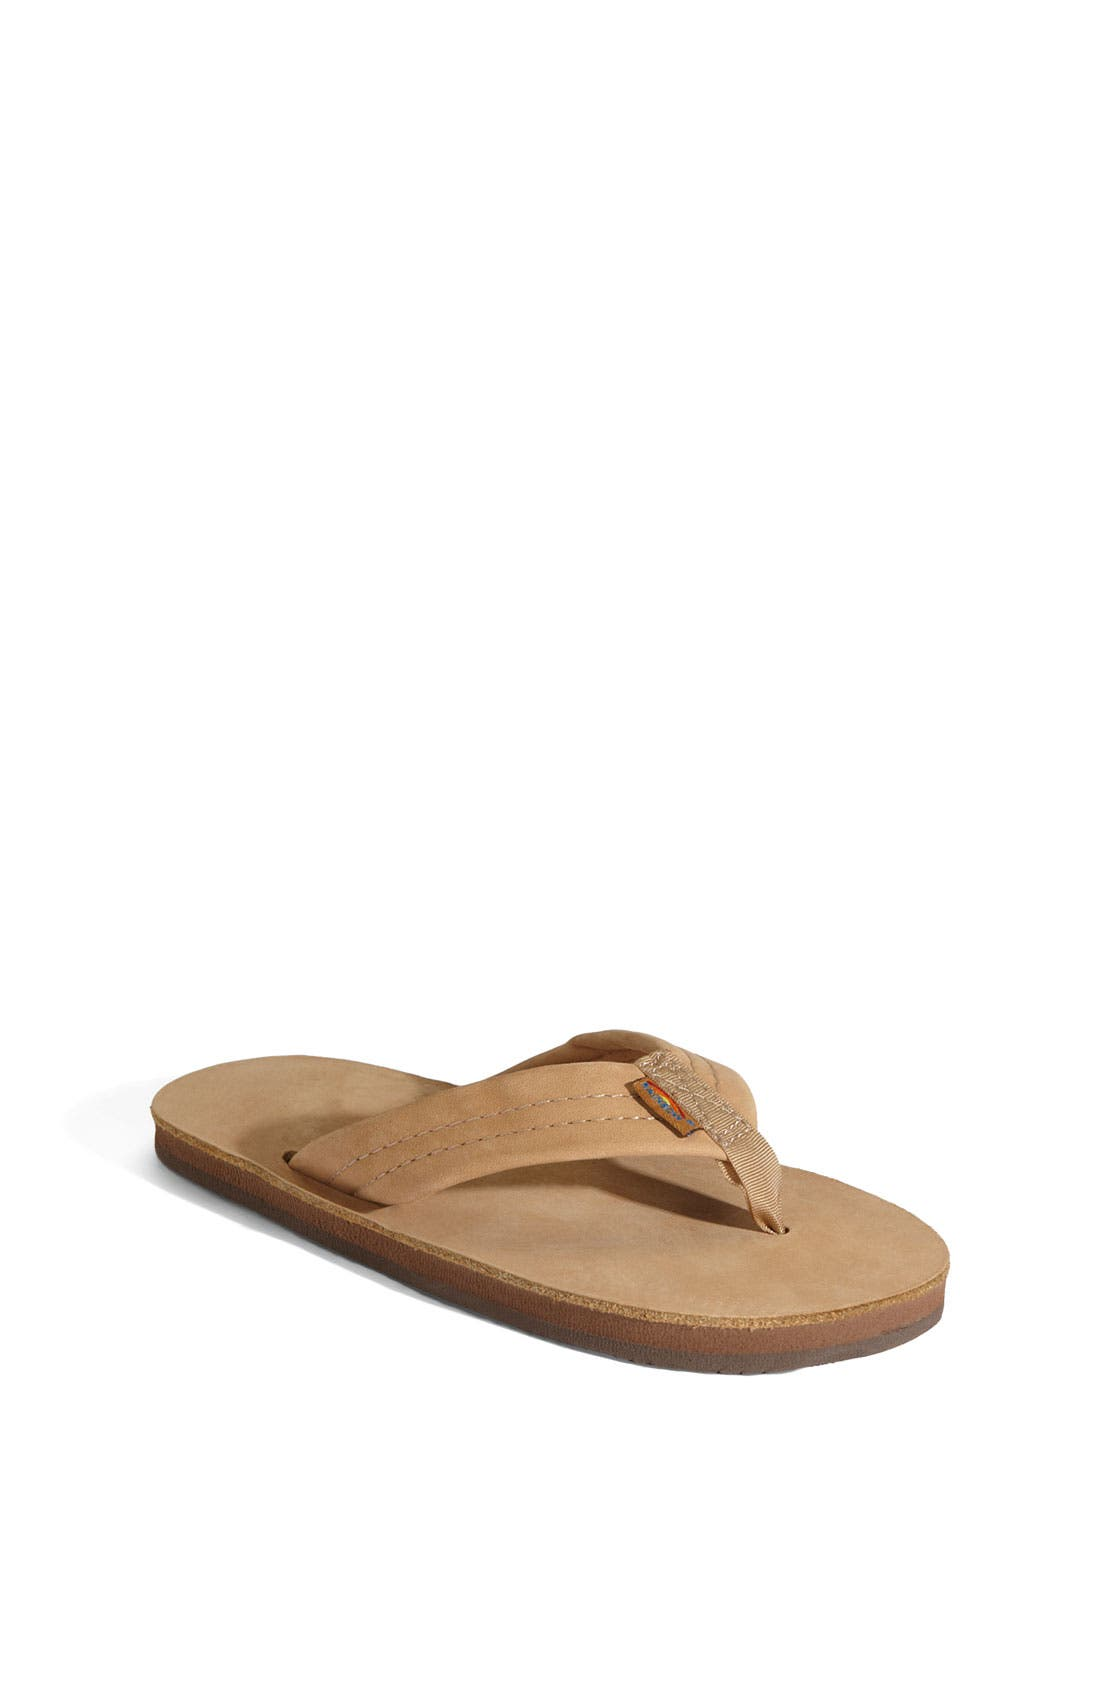 Alternate Image 1 Selected - Rainbow Leather Sandal (Toddler, Little Kid & Big Kid)